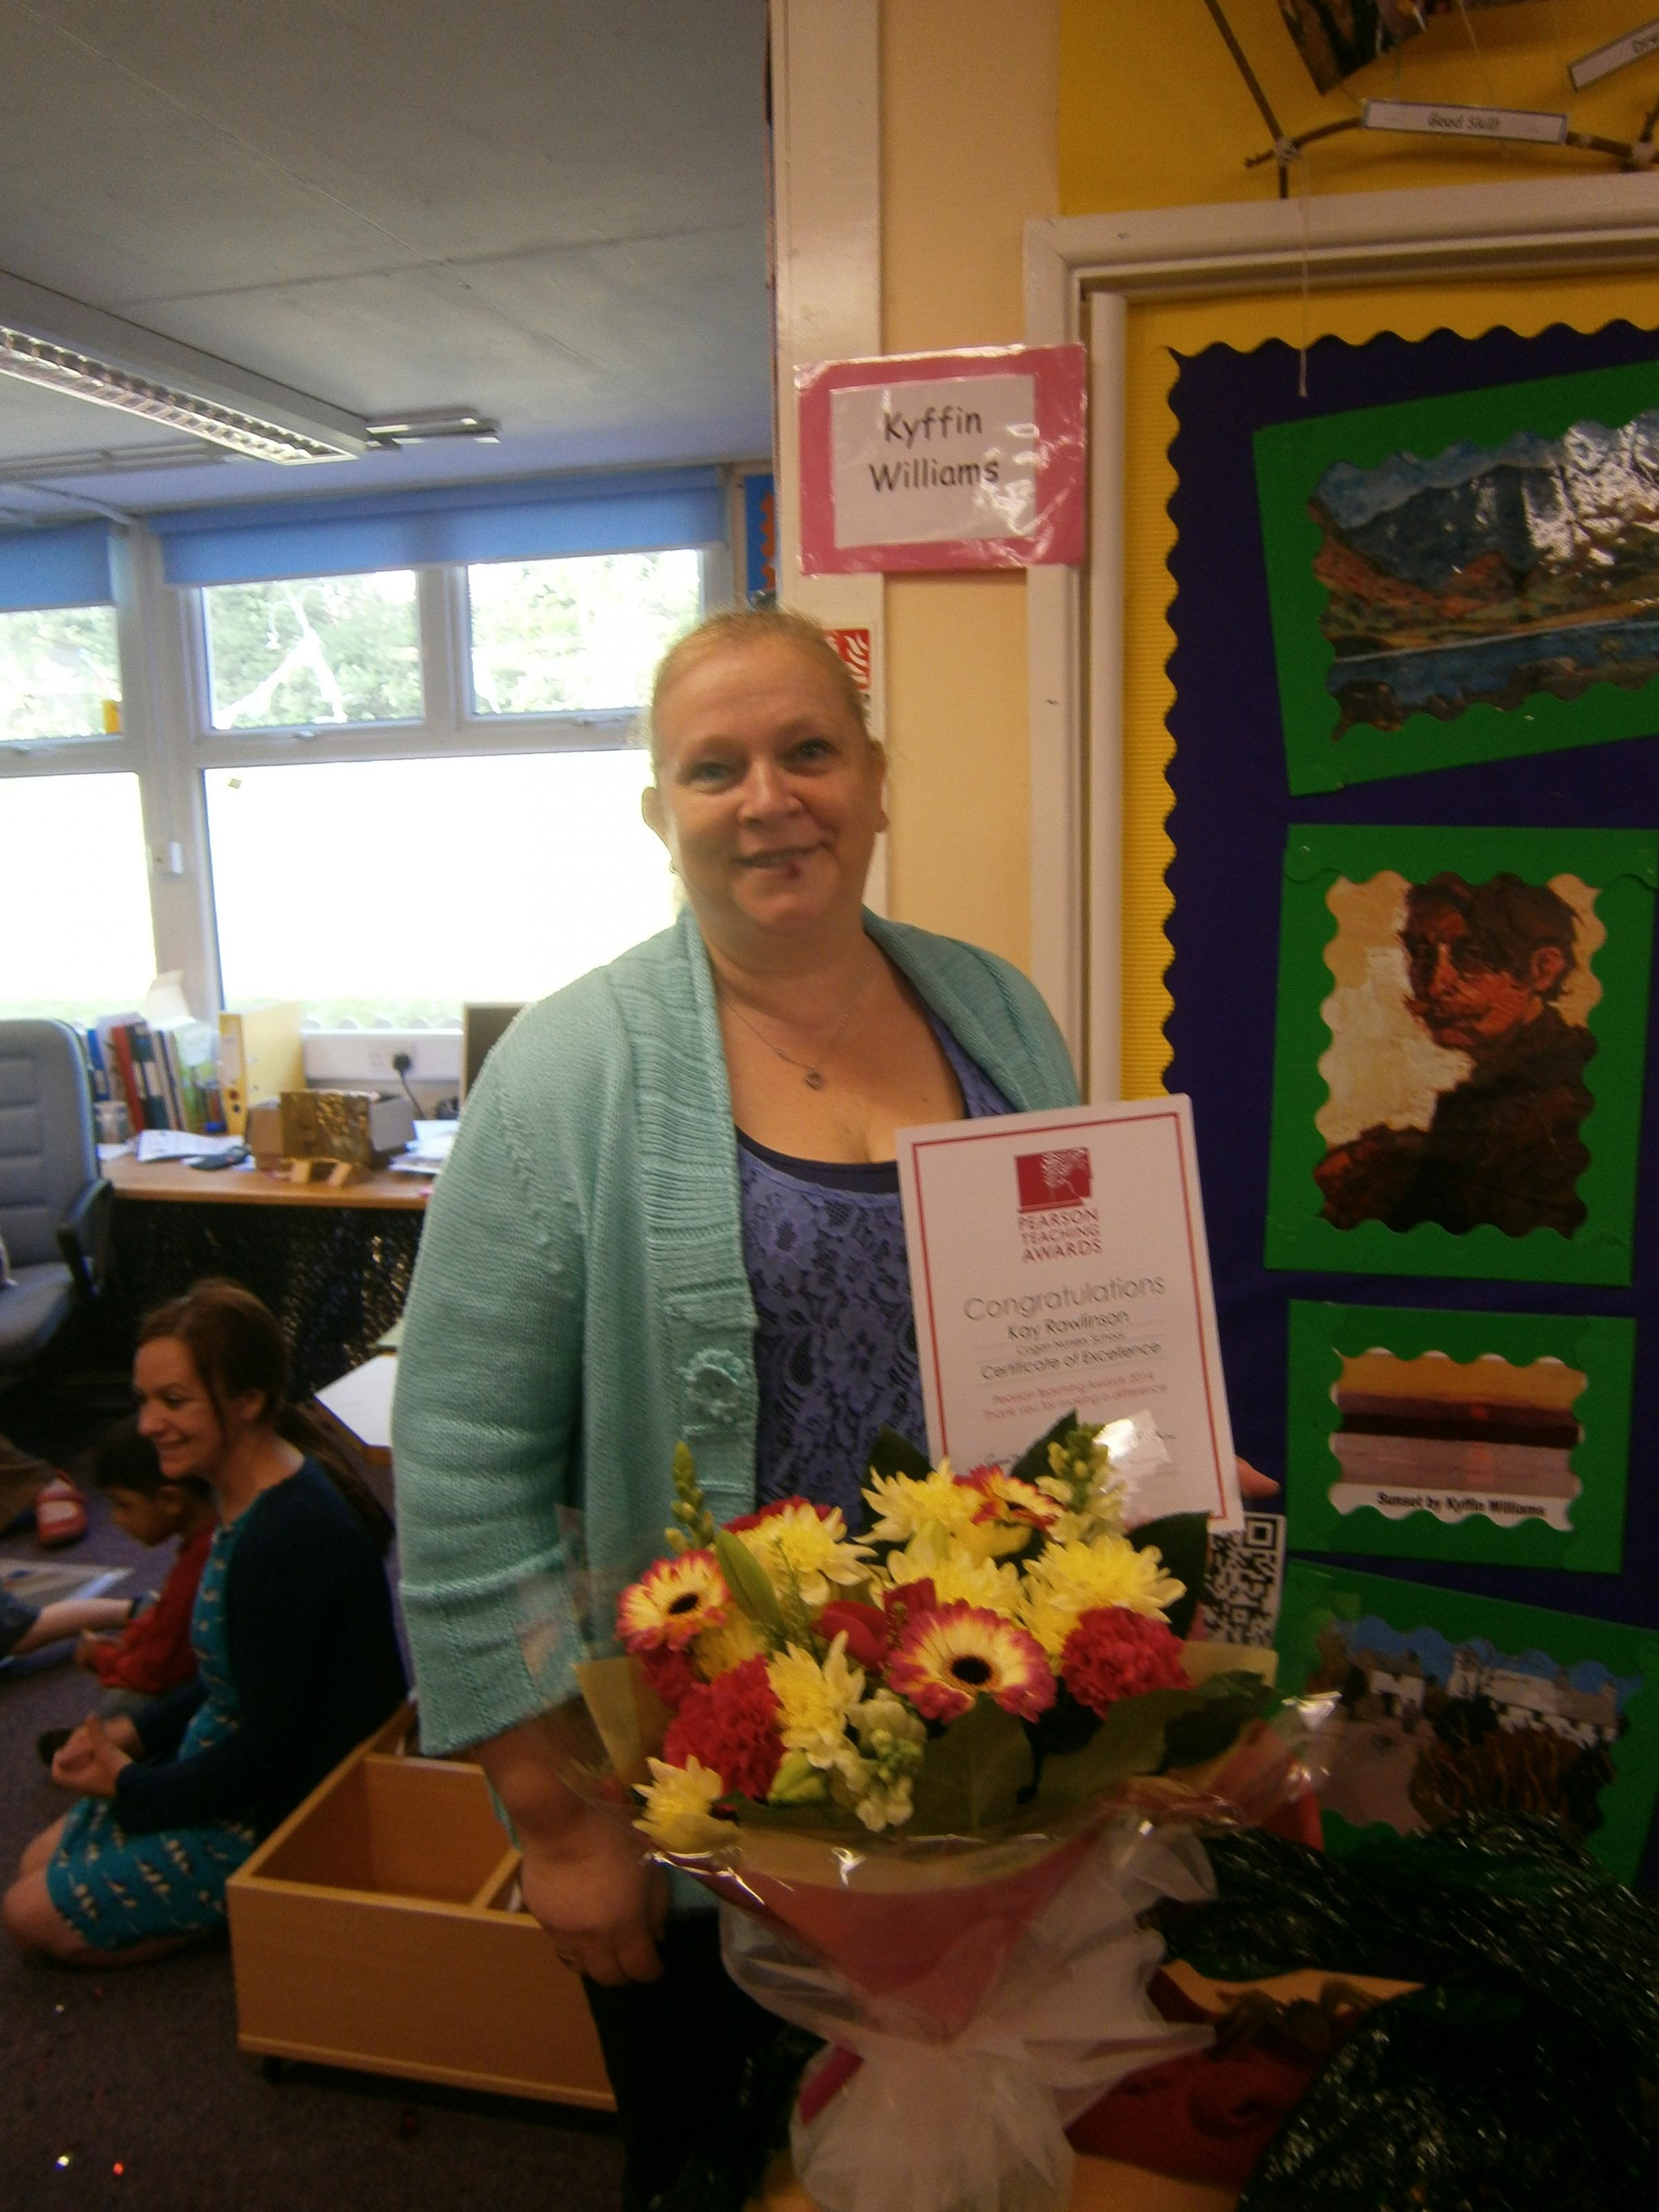 AWARD: Kay Rawlinson has been awarded a Certificate of Excellence from the Pearson National Teaching Awards